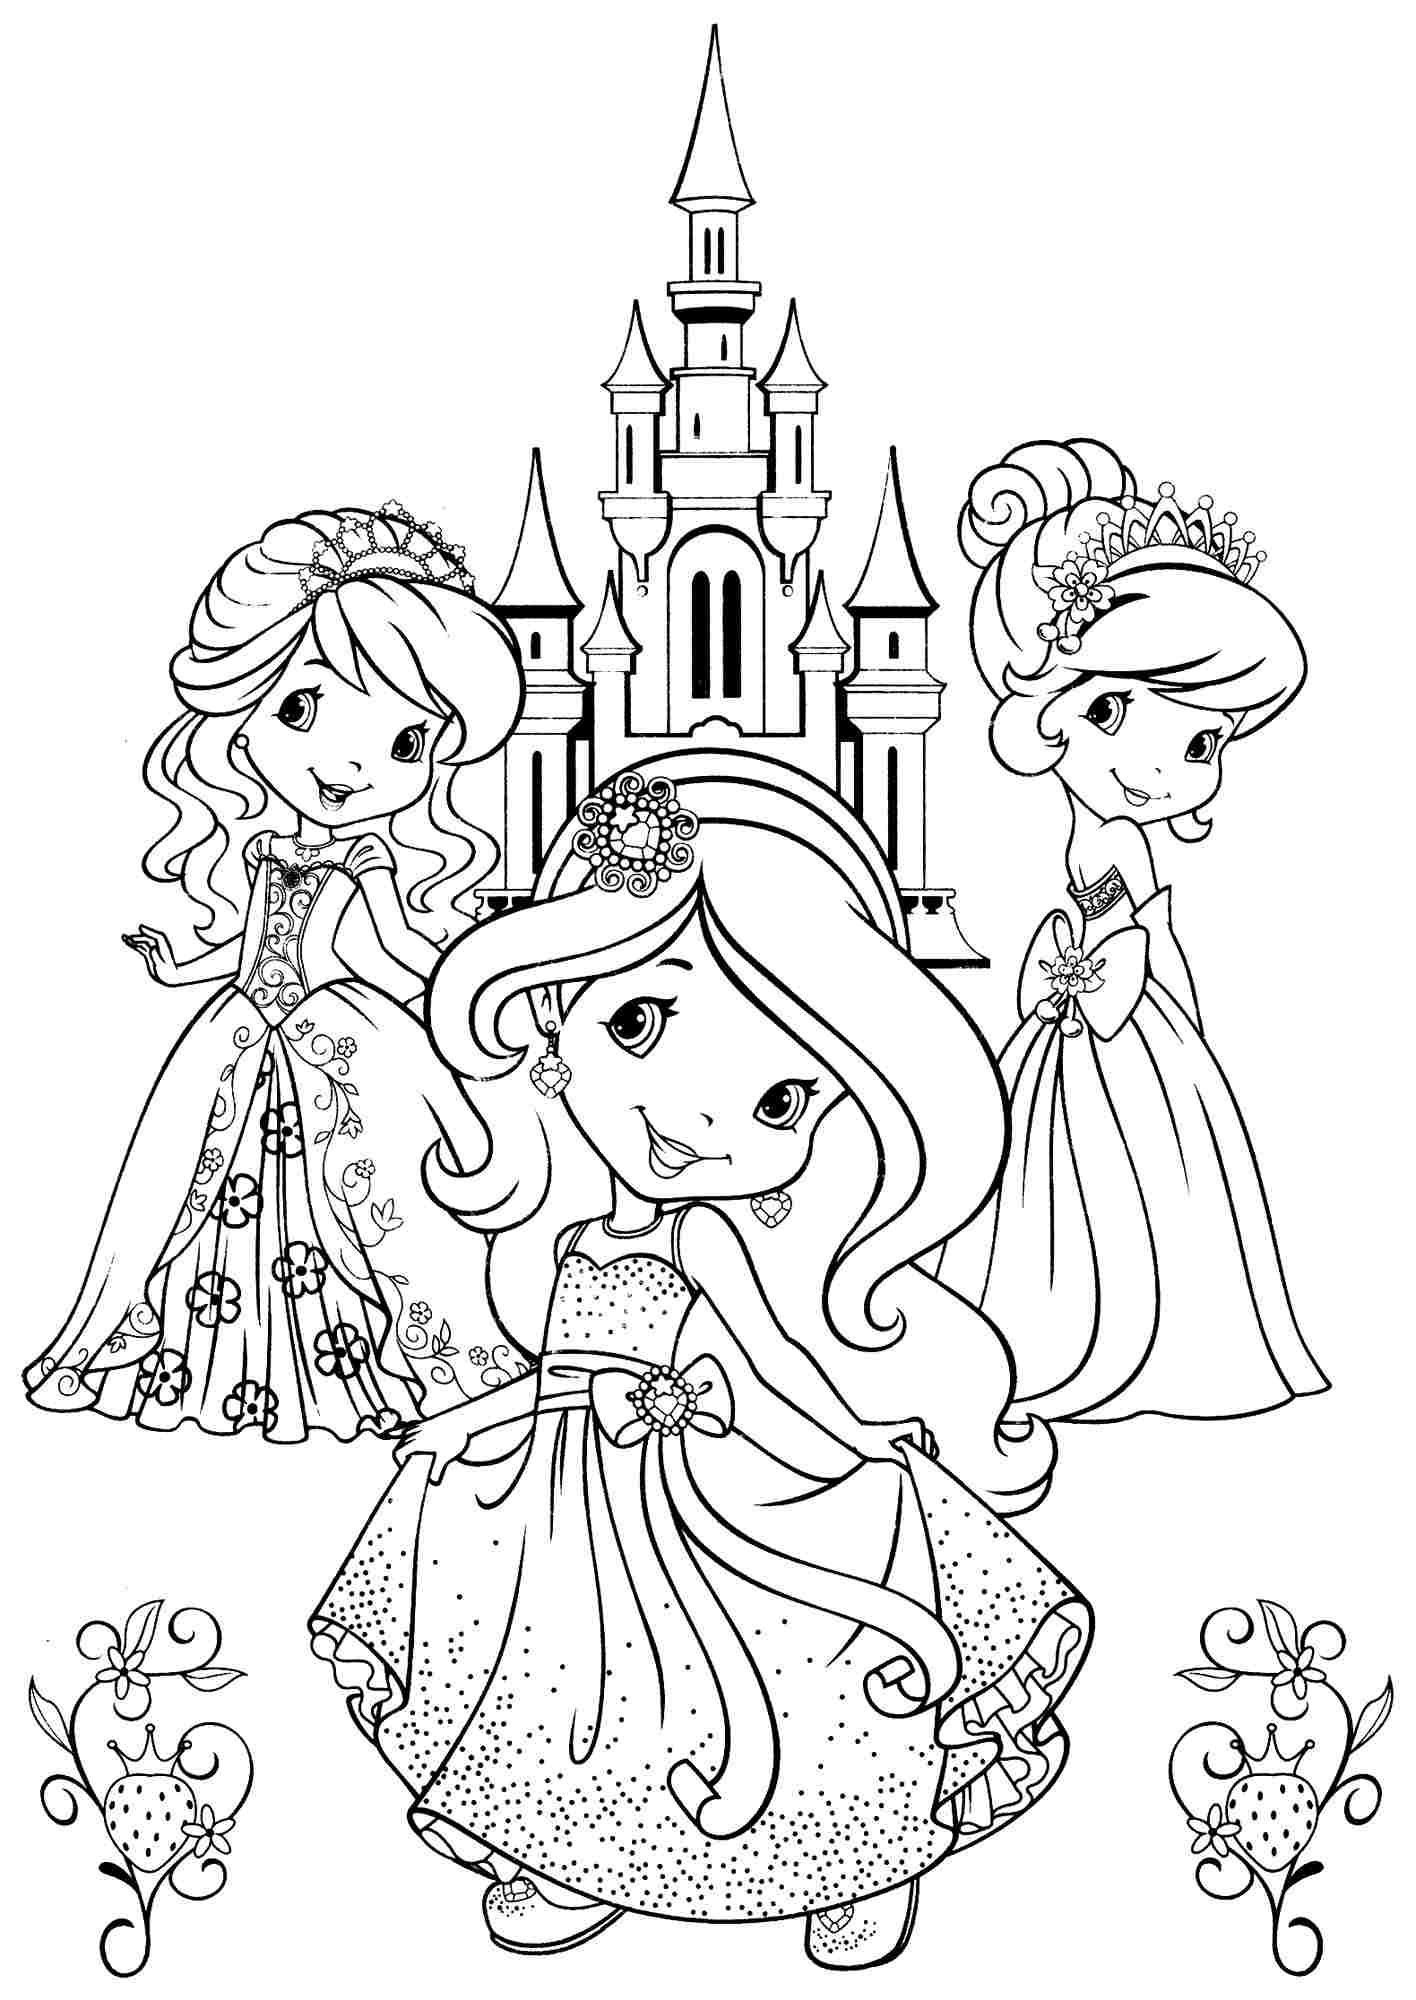 Printable Free Cartoon Strawberry Shortcake And Friends Coloring ...